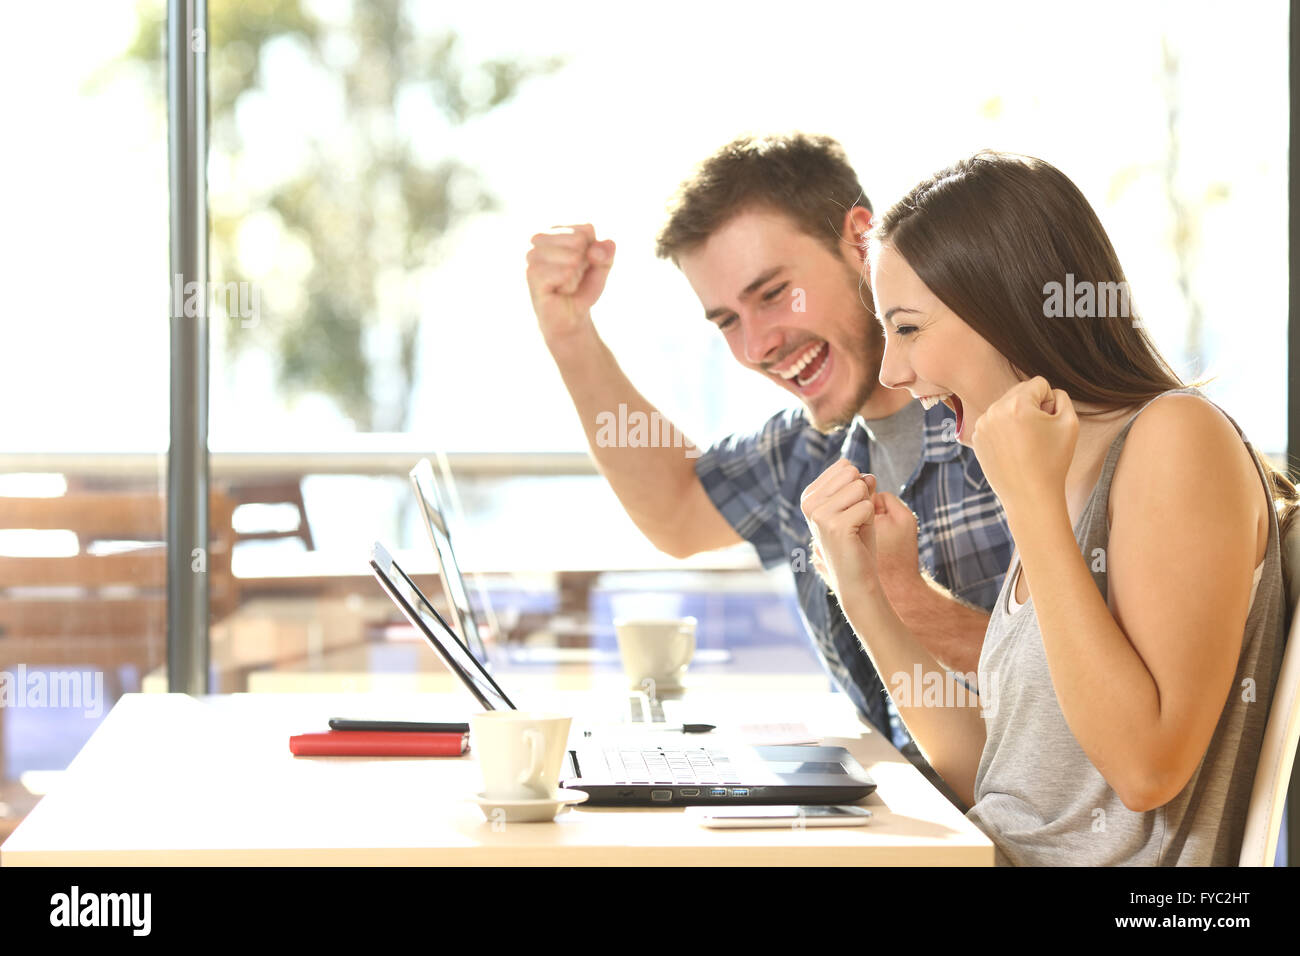 Group of two young euphoric students watching exam results in a laptop in a table of an university campus bar - Stock Image